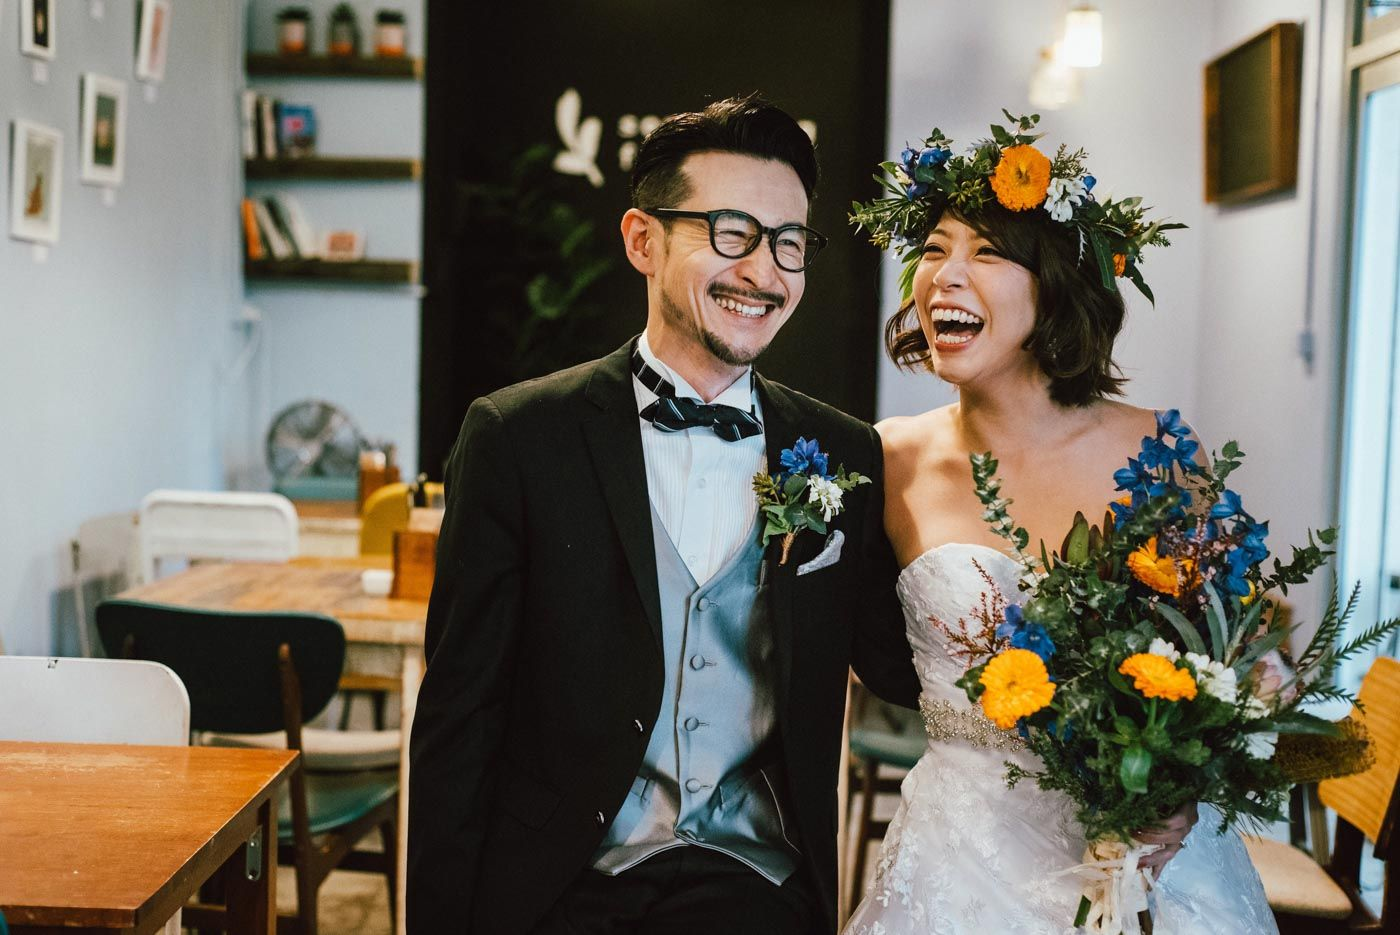 Elopement couple laughing together inside cafe